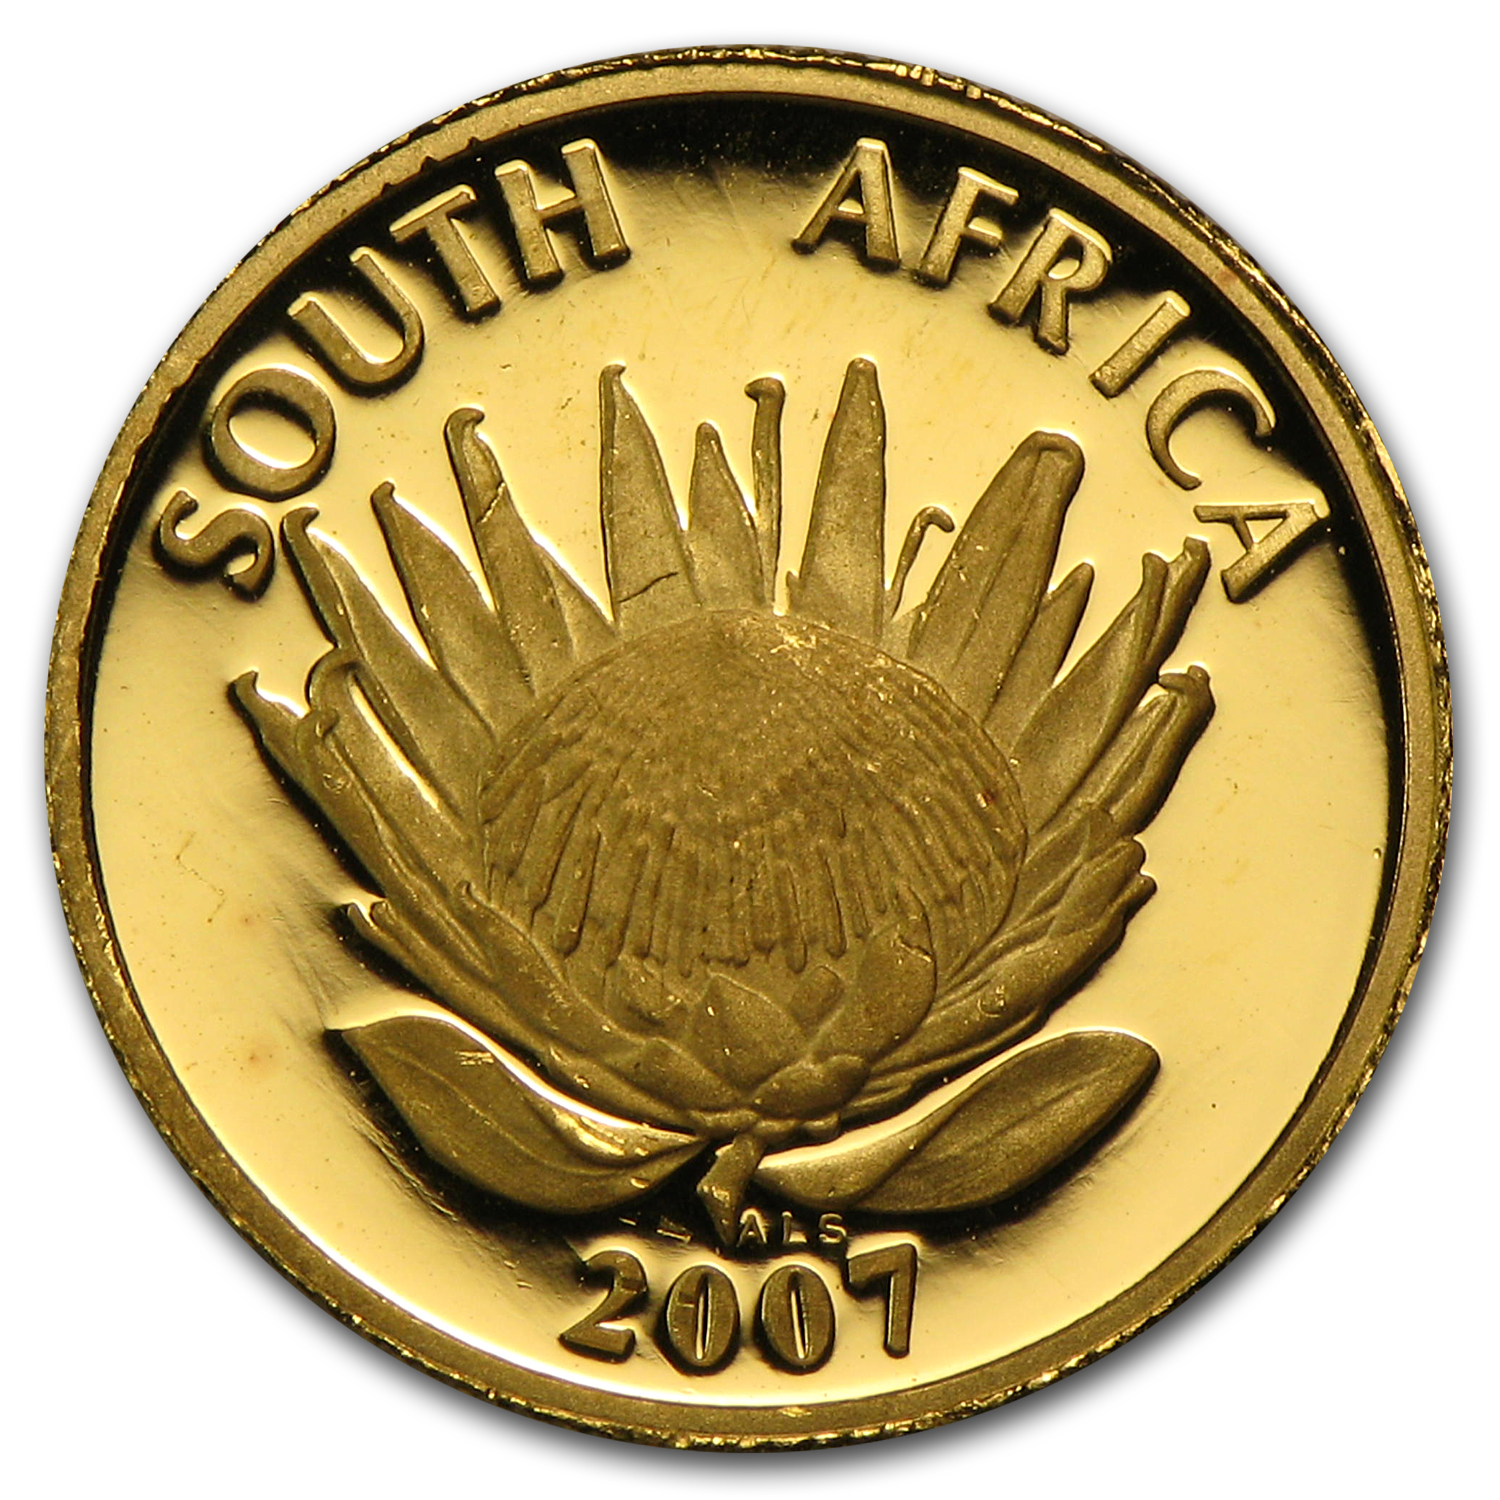 2007 South Africa 1/10 oz Proof Gold Protea Nobel Prize